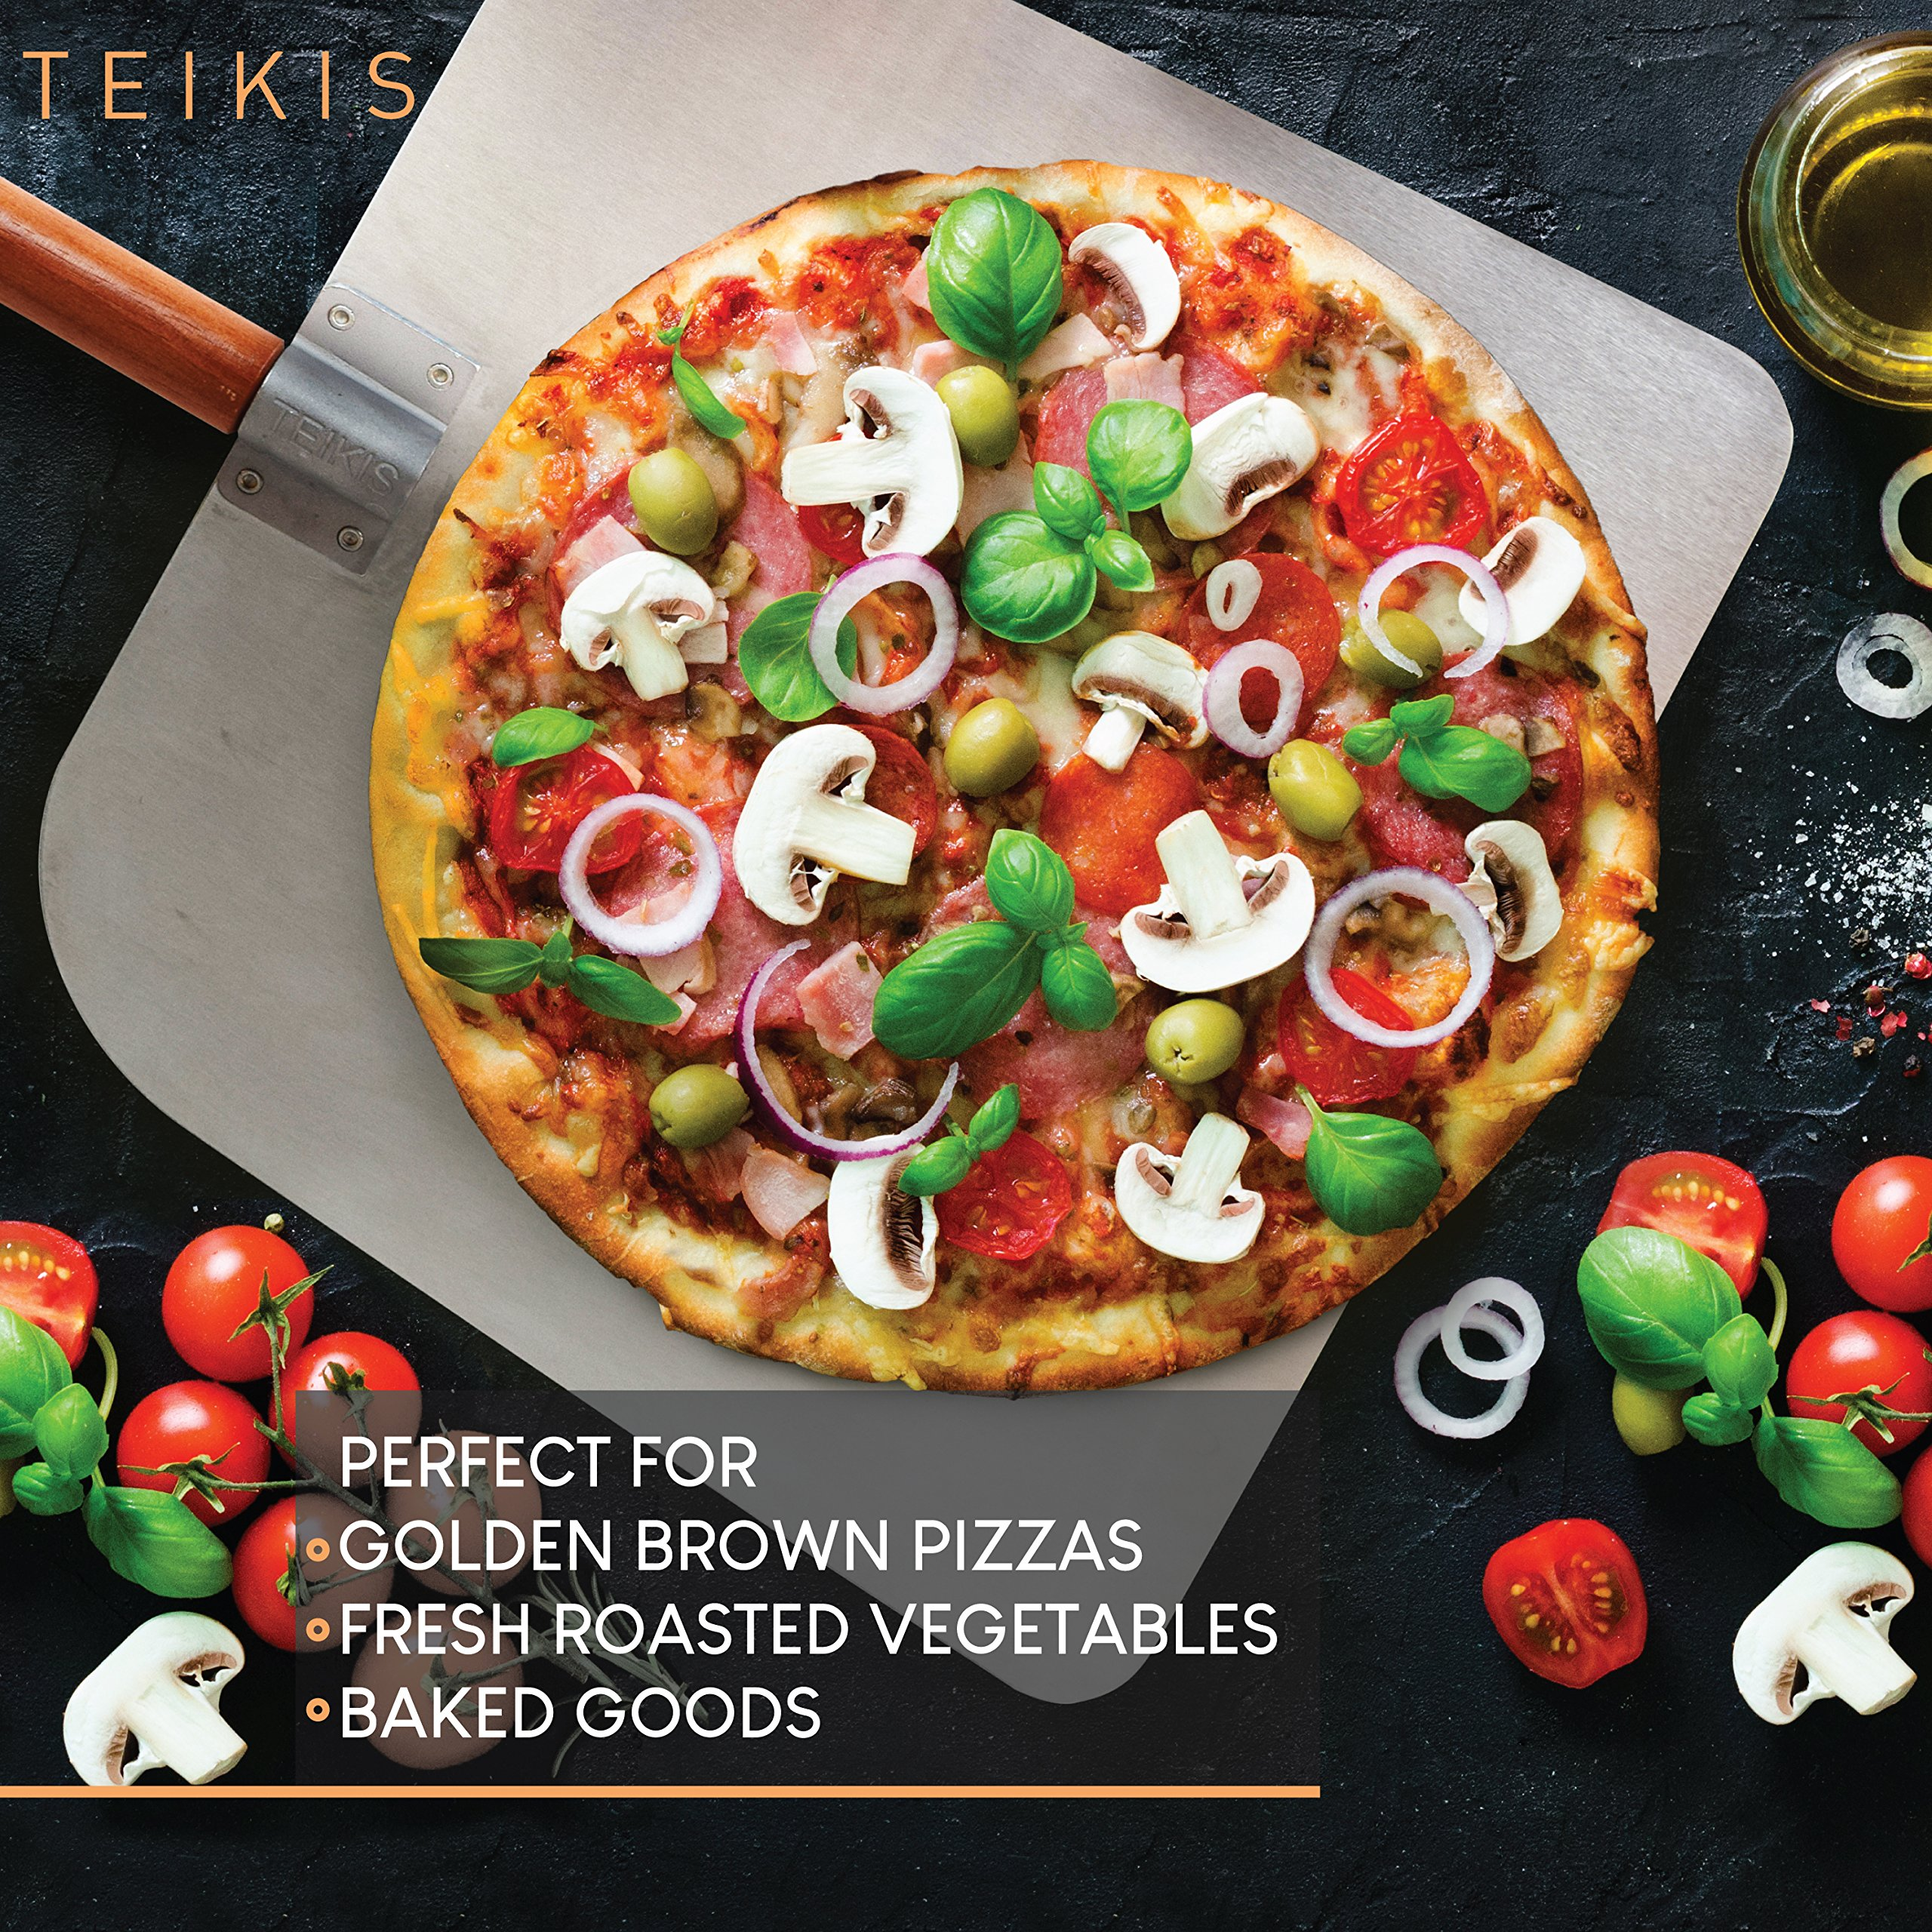 TeiKis Large 14-inch Pizza Cutter + Pizza Peel Paddle Board Set (14-inch x 16-inch) with Wood Handle by TeiKis (Image #2)